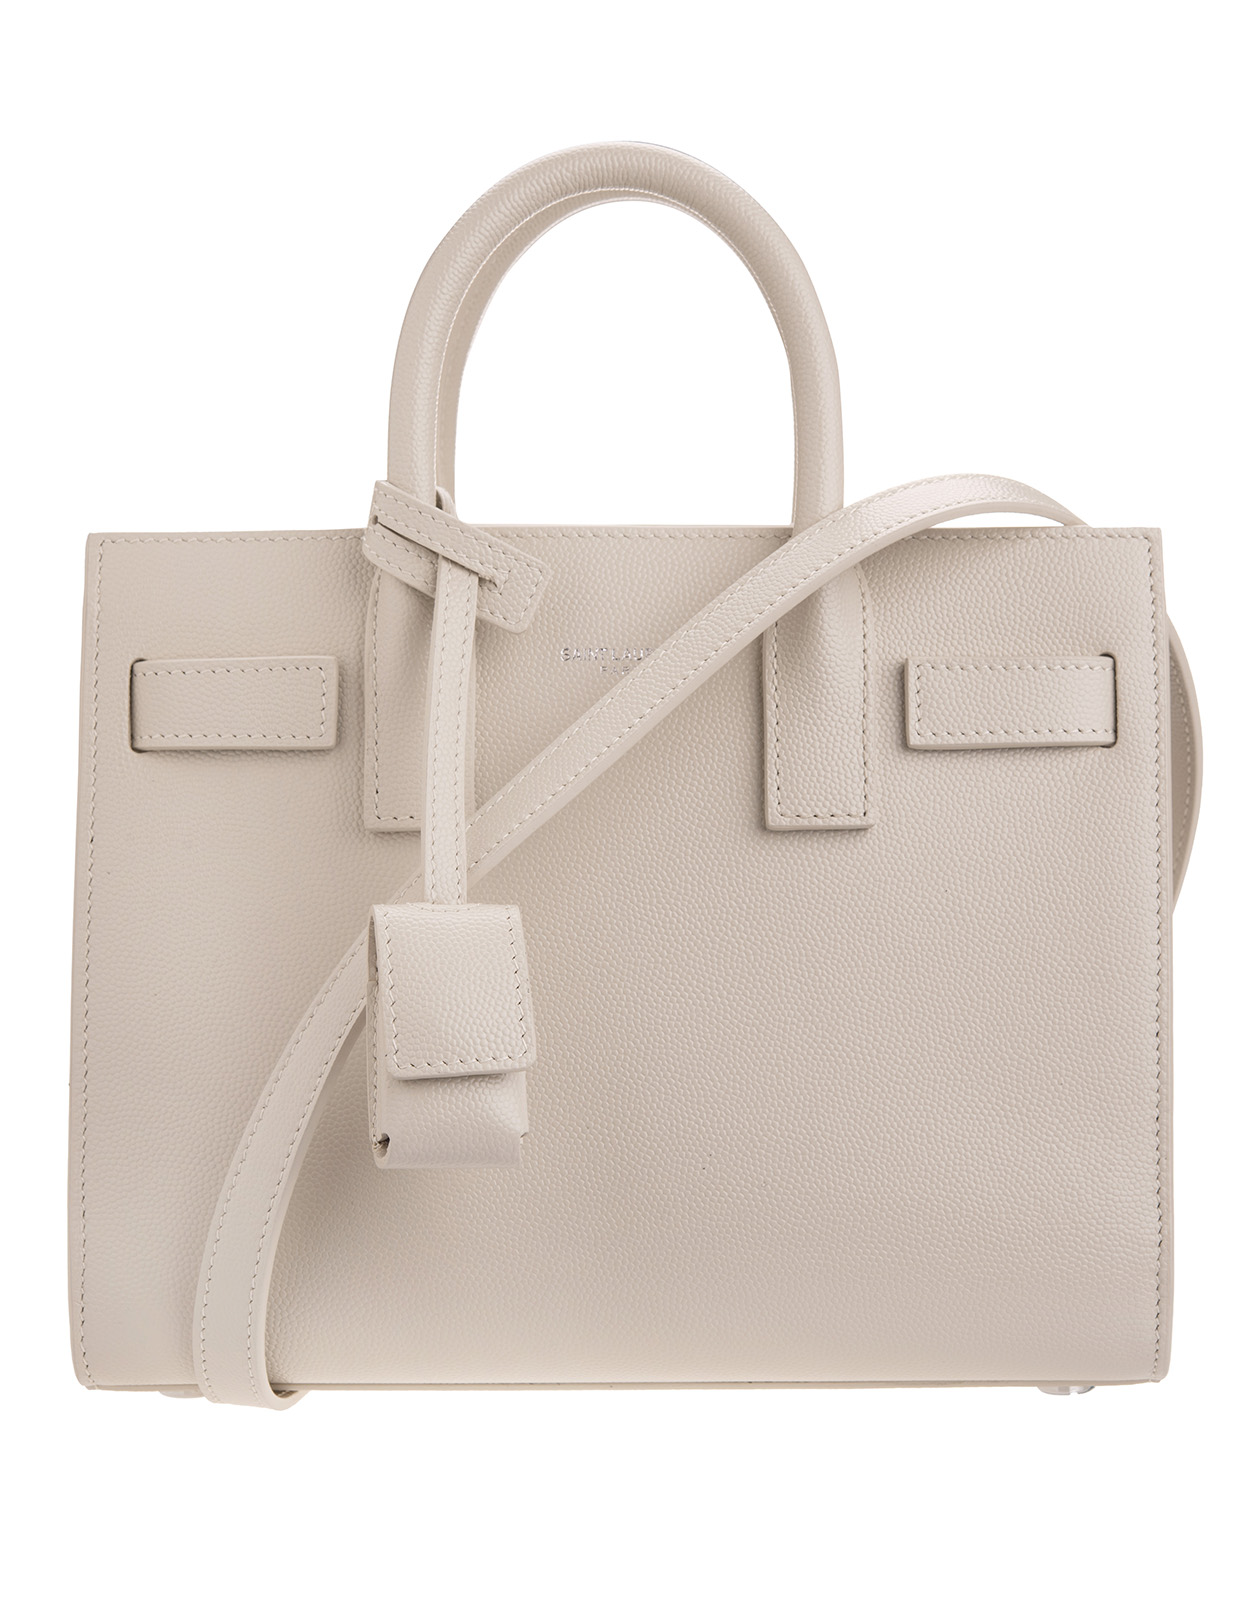 0e6684989e2 Classic Sac De Jour Baby Bag In Grain De Poudre Embossed Cream Leather - SAINT  LAURENT - Russocapri